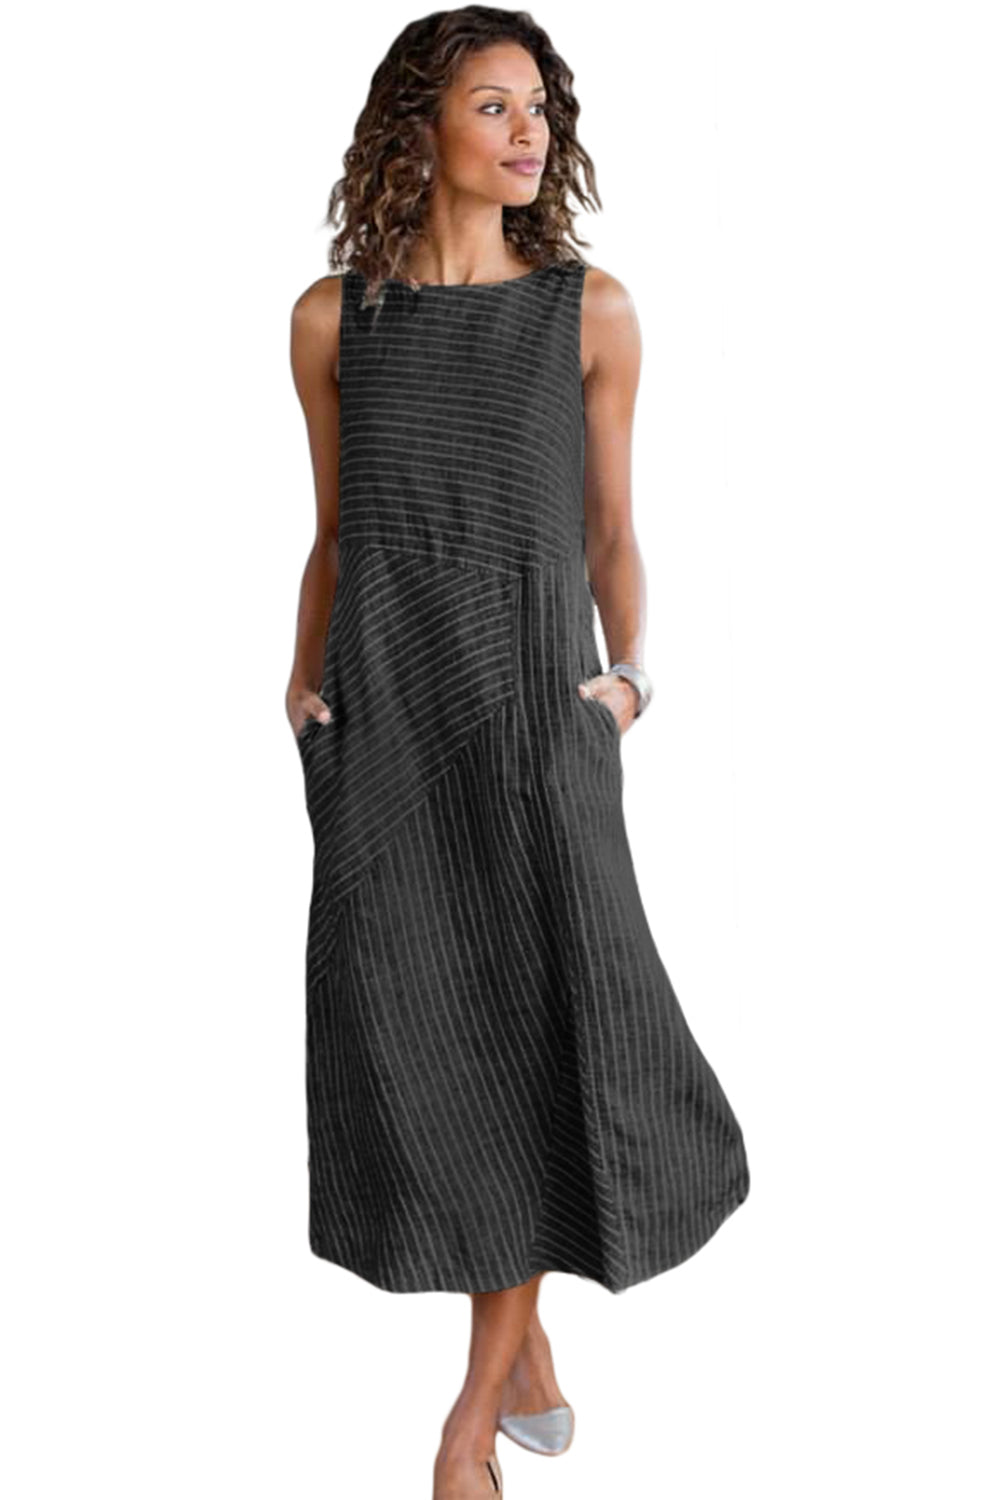 Black Crew Neck Striped Shift Daily Dress